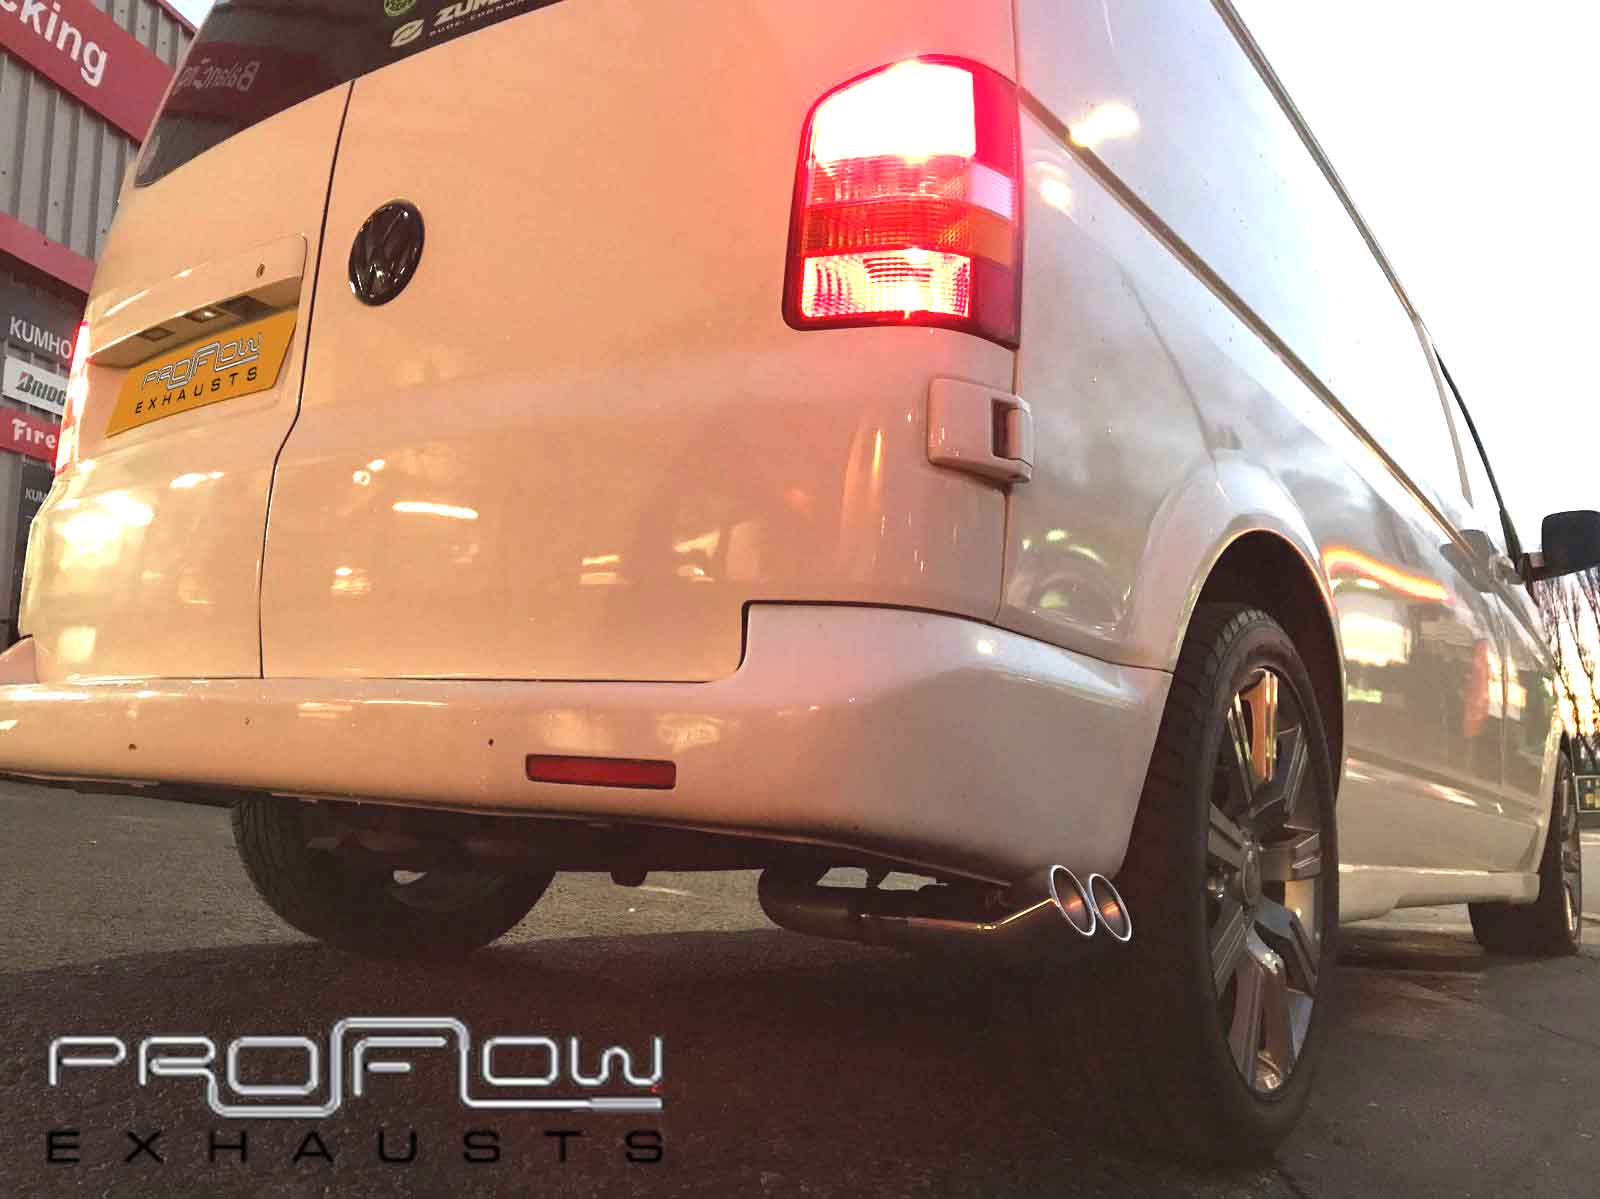 Vw Transporter T5 Fitted With Proflow Exhausts Stainless Steel Side Exit Van Tech